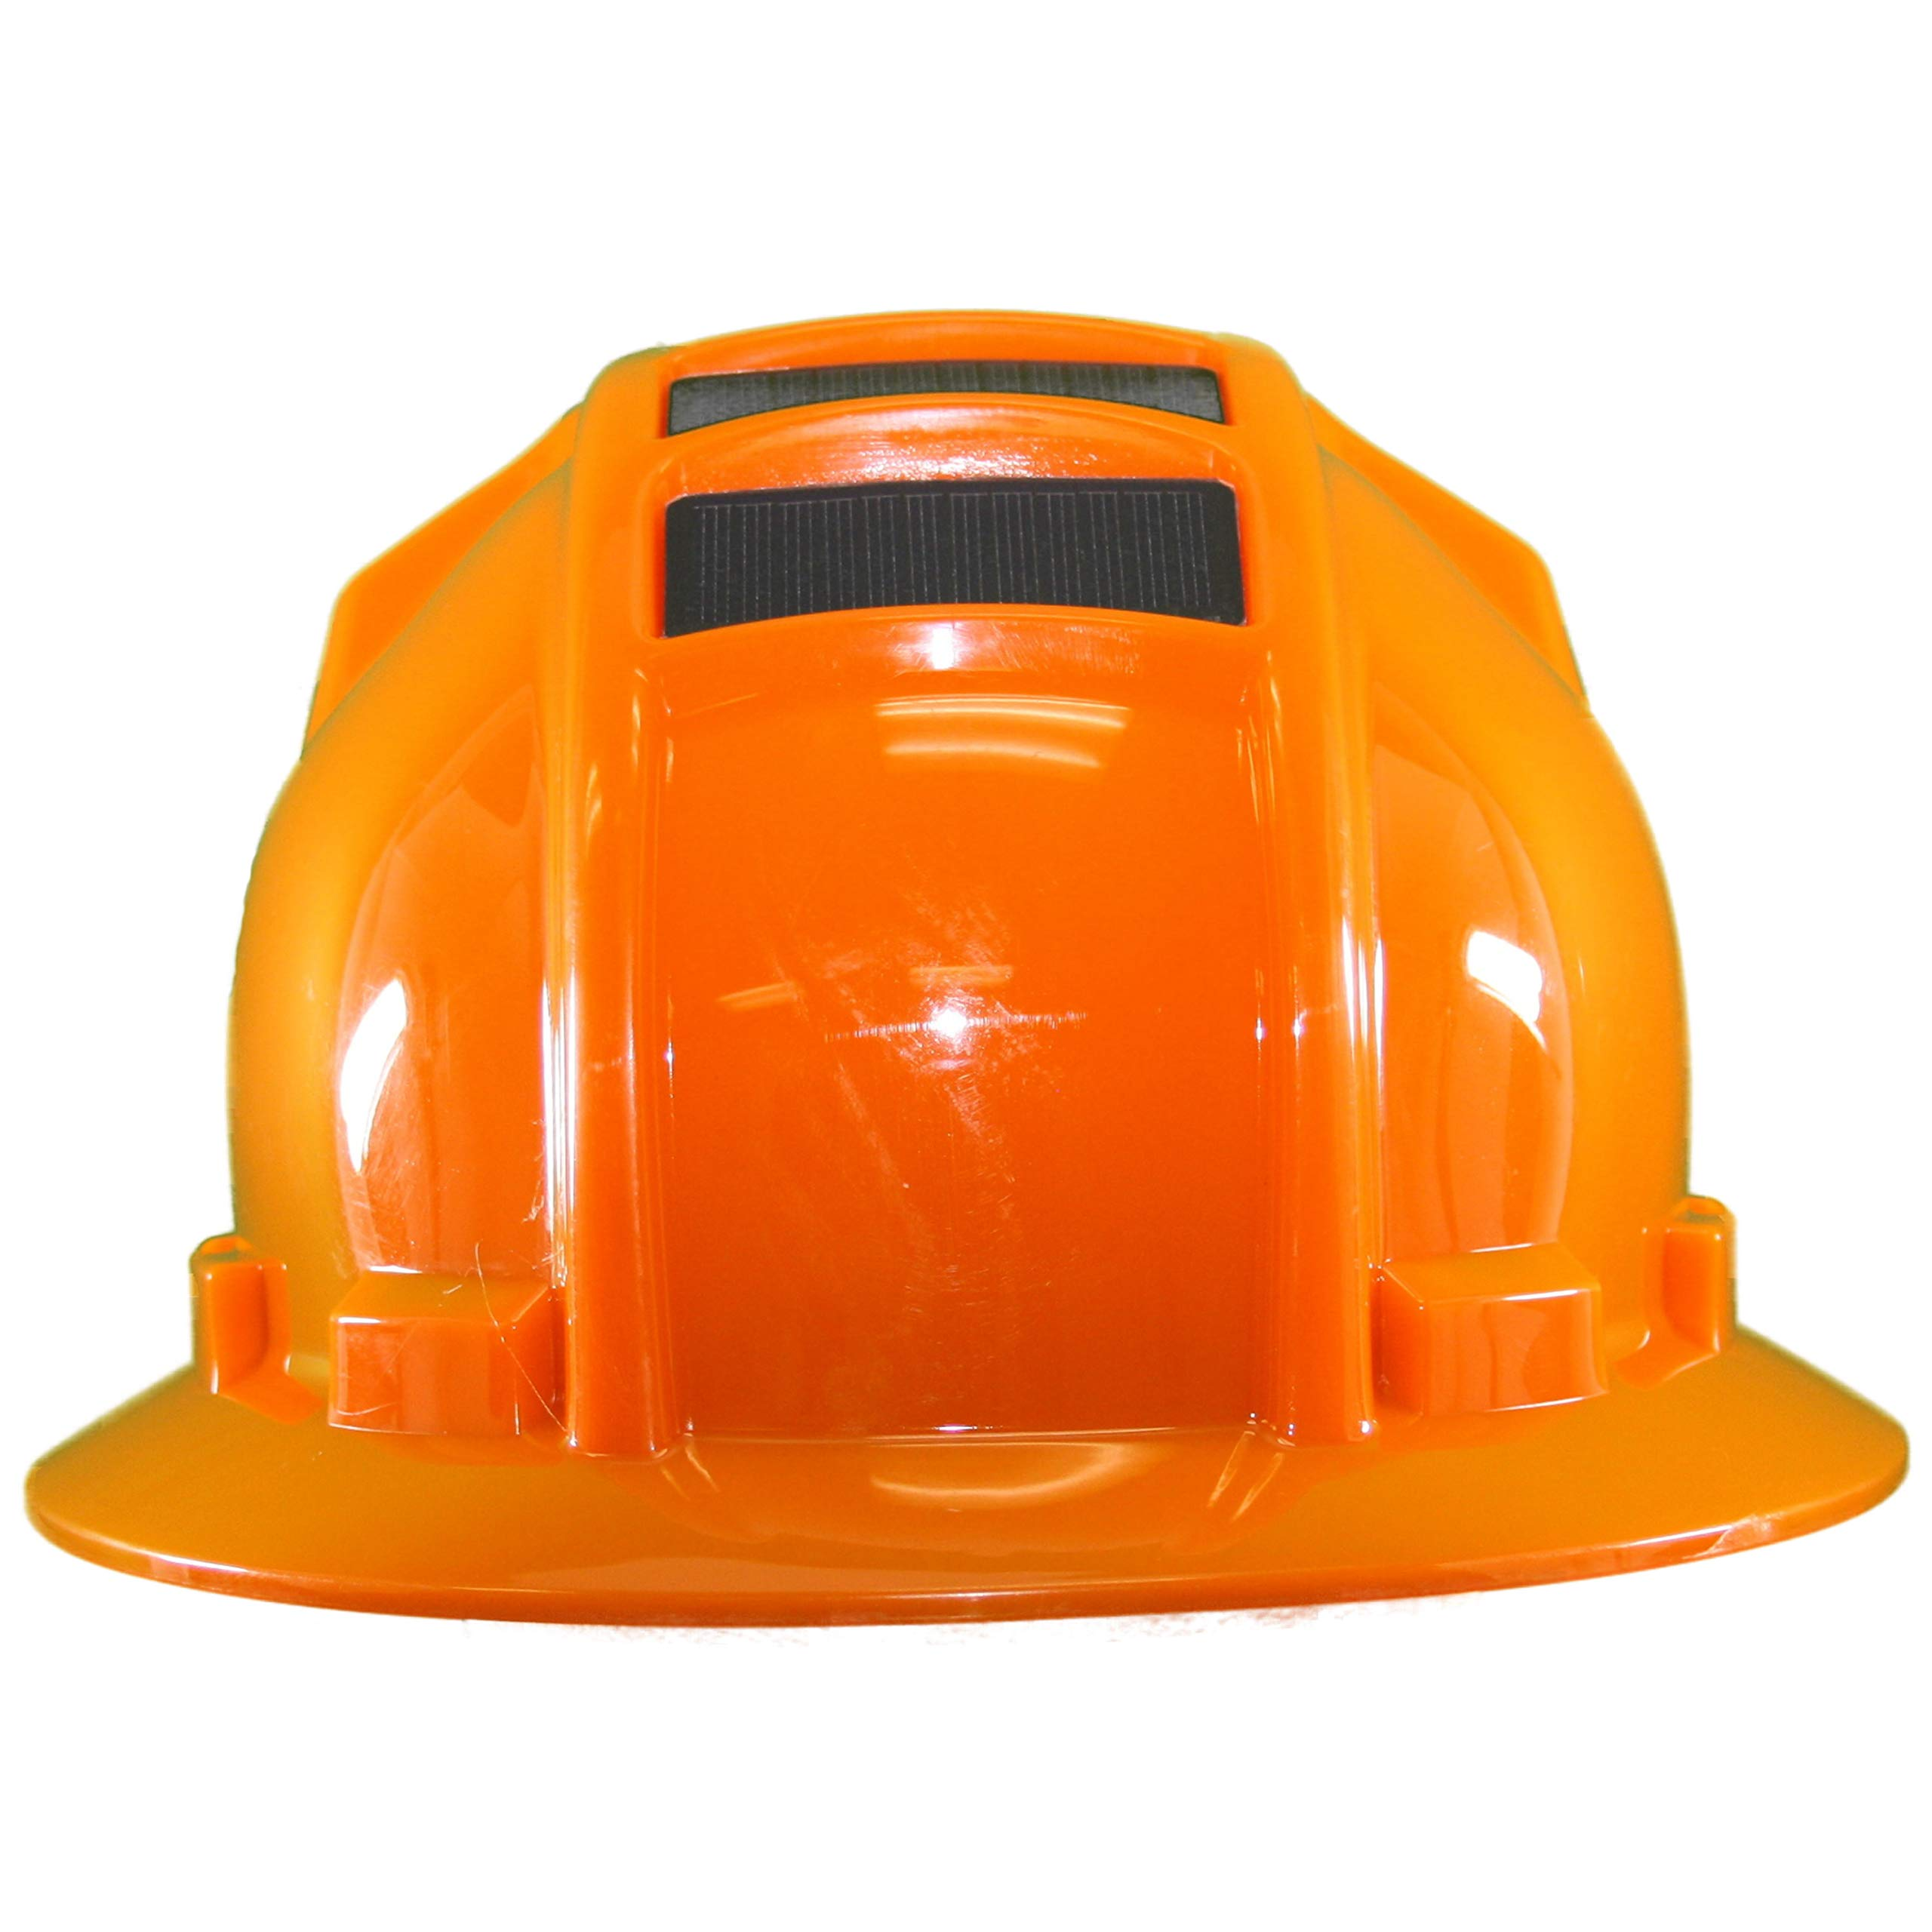 Hard Hat Head Protection Kool Breeze Solar Helmet With Rechargeable Battery and Adjustable Ratchet Suspension (Orange)